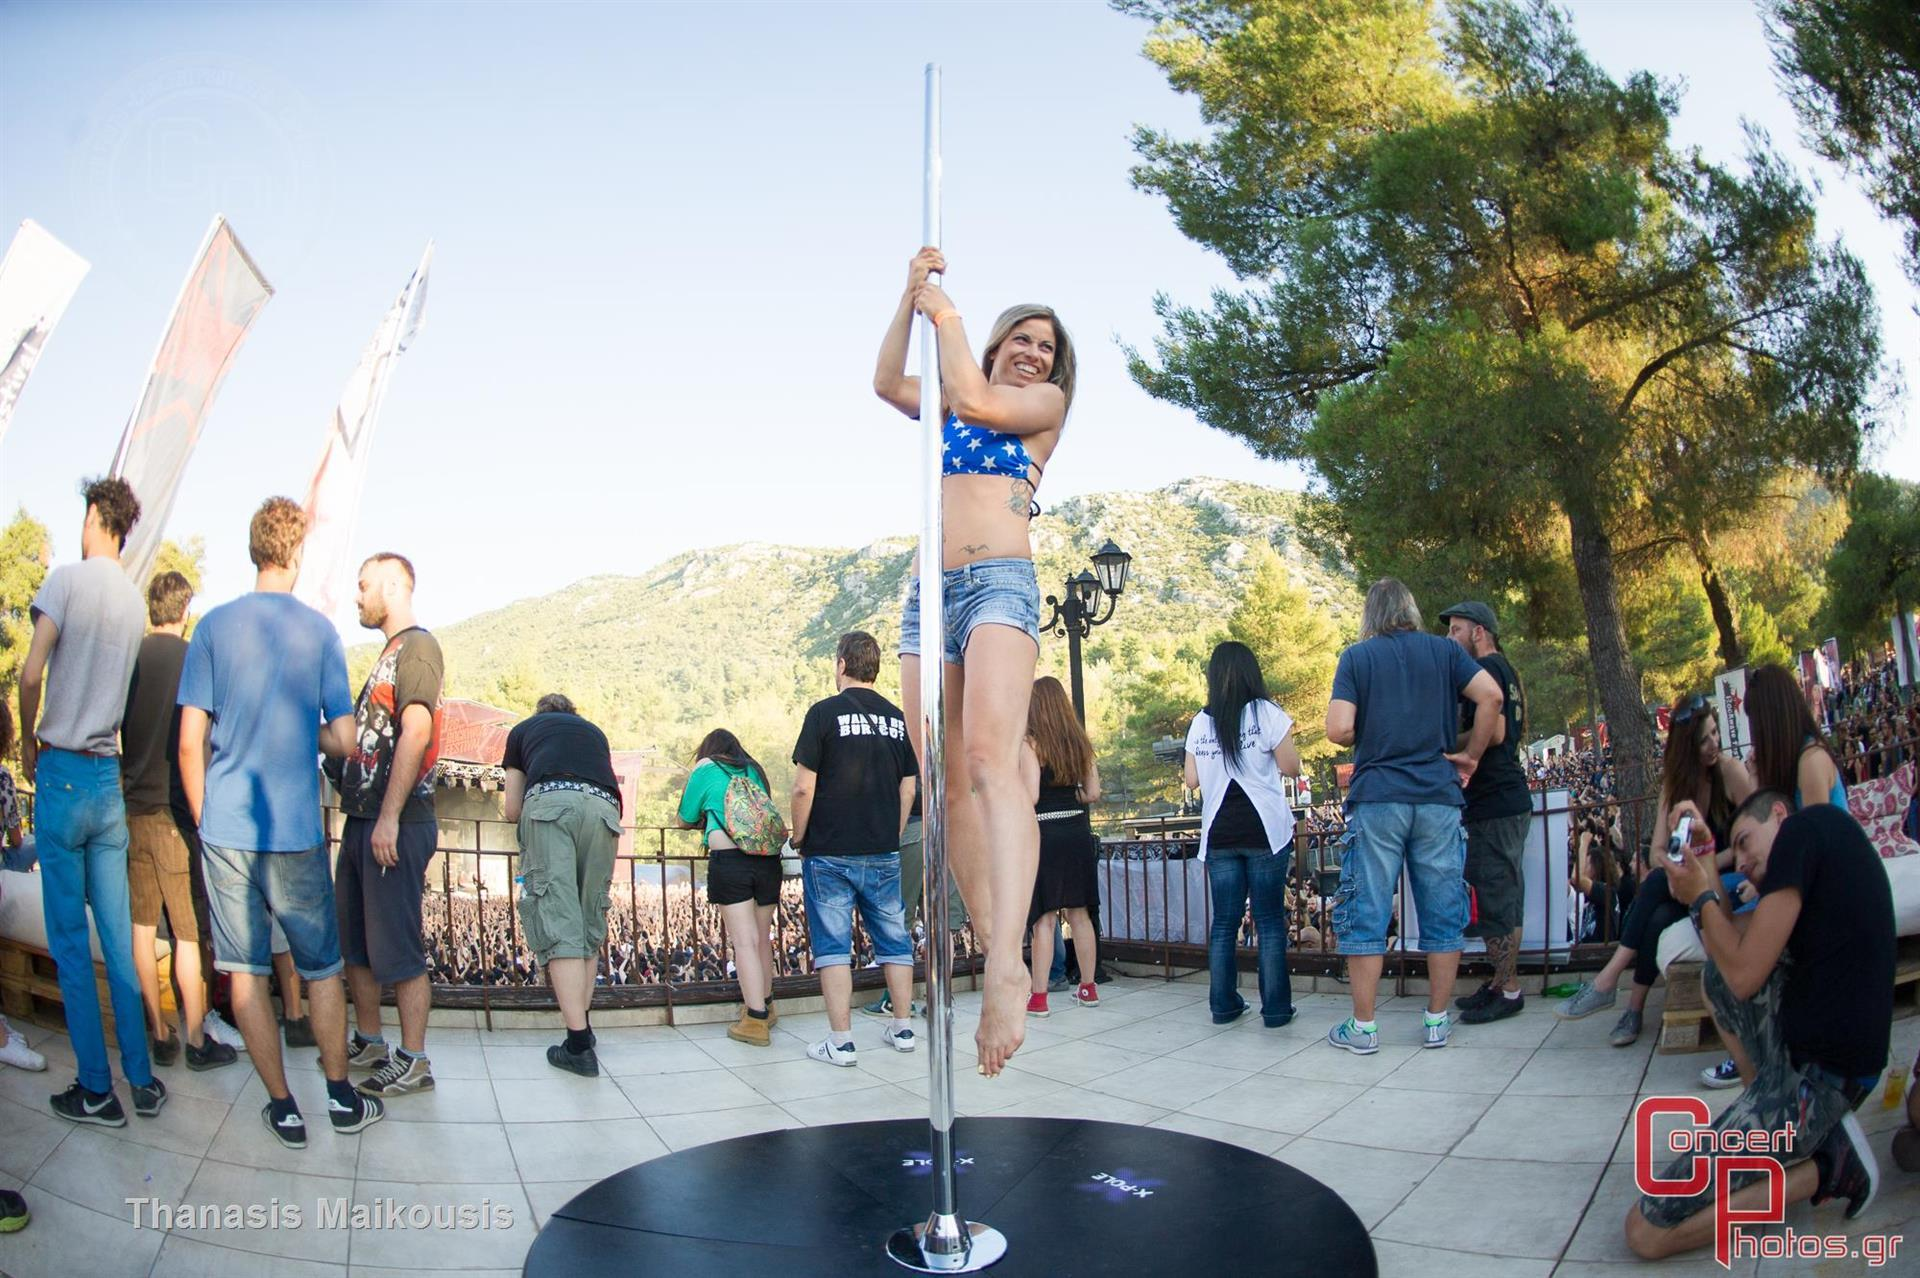 Rockwave 2015 - Day 3-Rockwave 2015 - Day 3 photographer: Thanasis Maikousis - ConcertPhotos - 20150704_1828_58